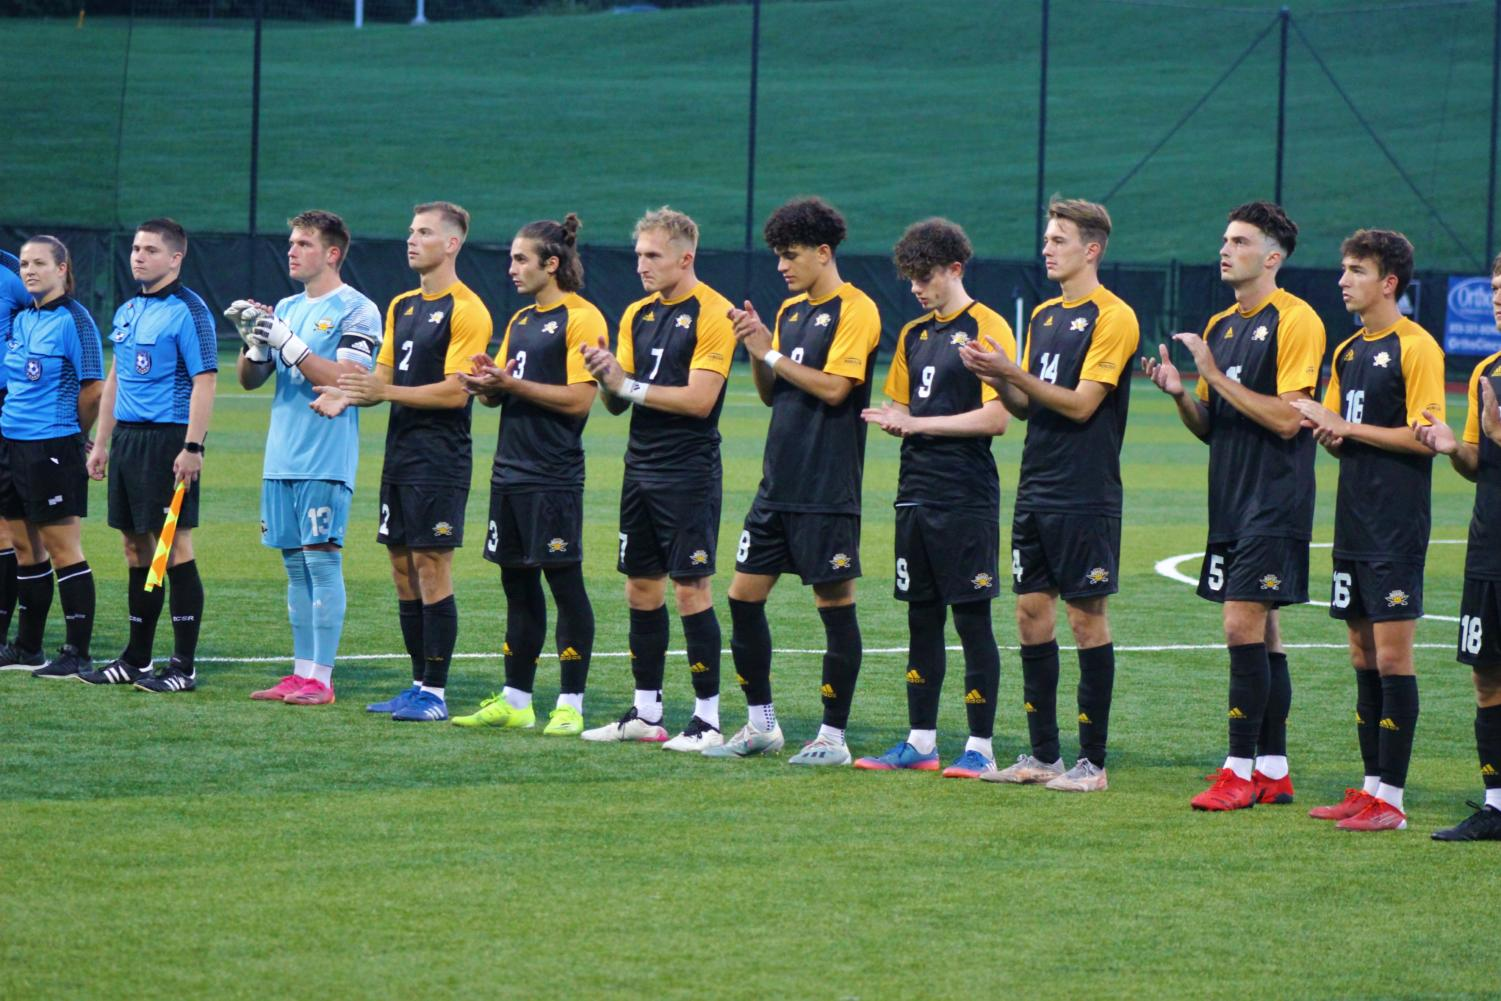 The starters for the NKU mens soccer team are introduced before their match against Detroit Mercy on Saturday.